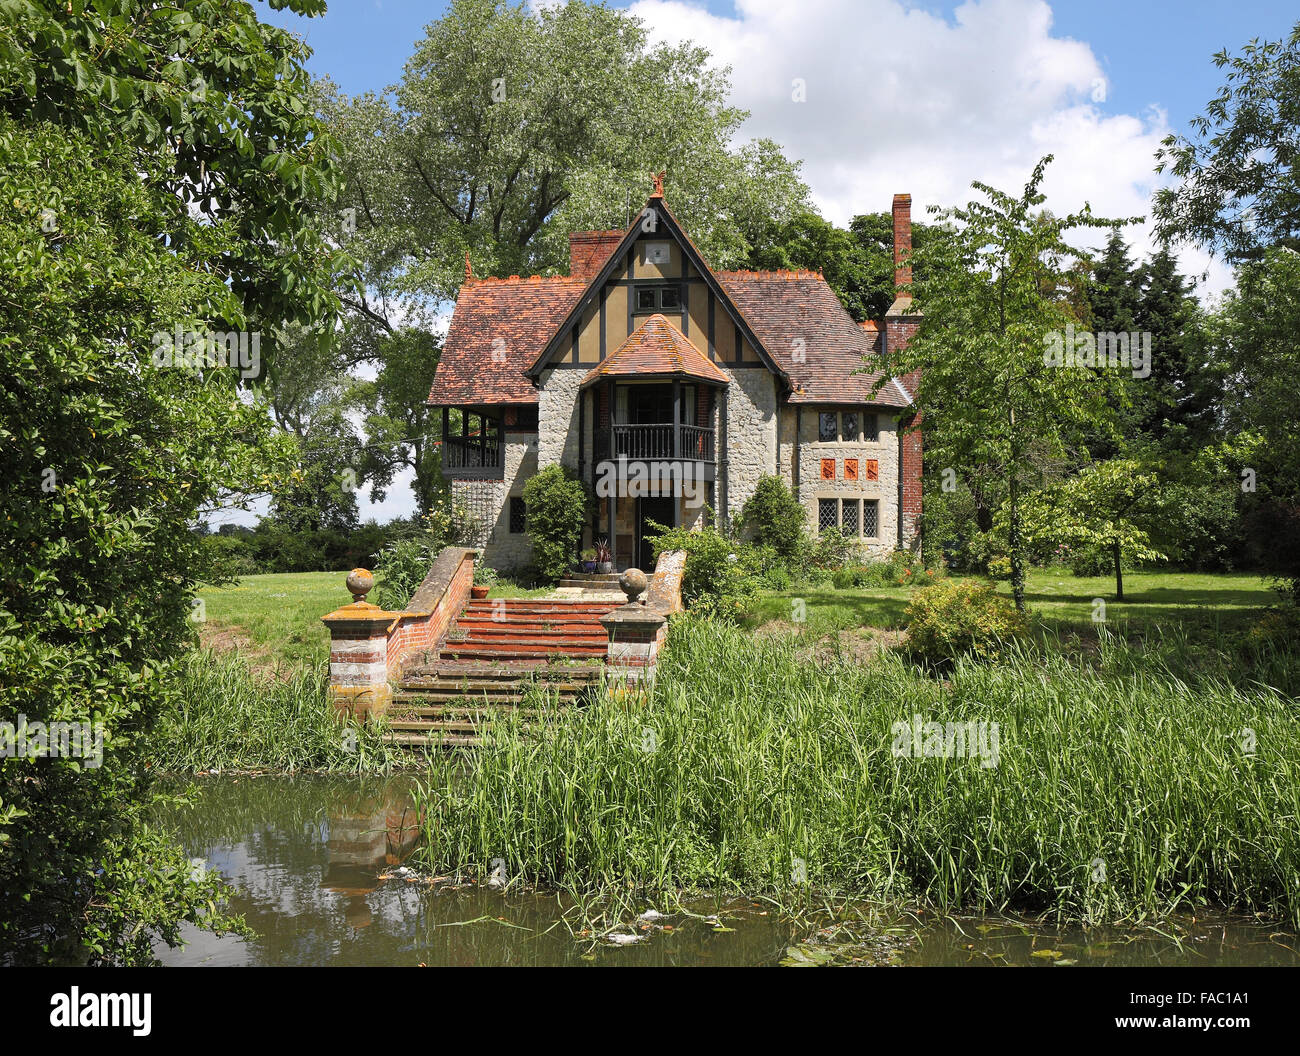 waterside cottage stock photos u0026 waterside cottage stock images